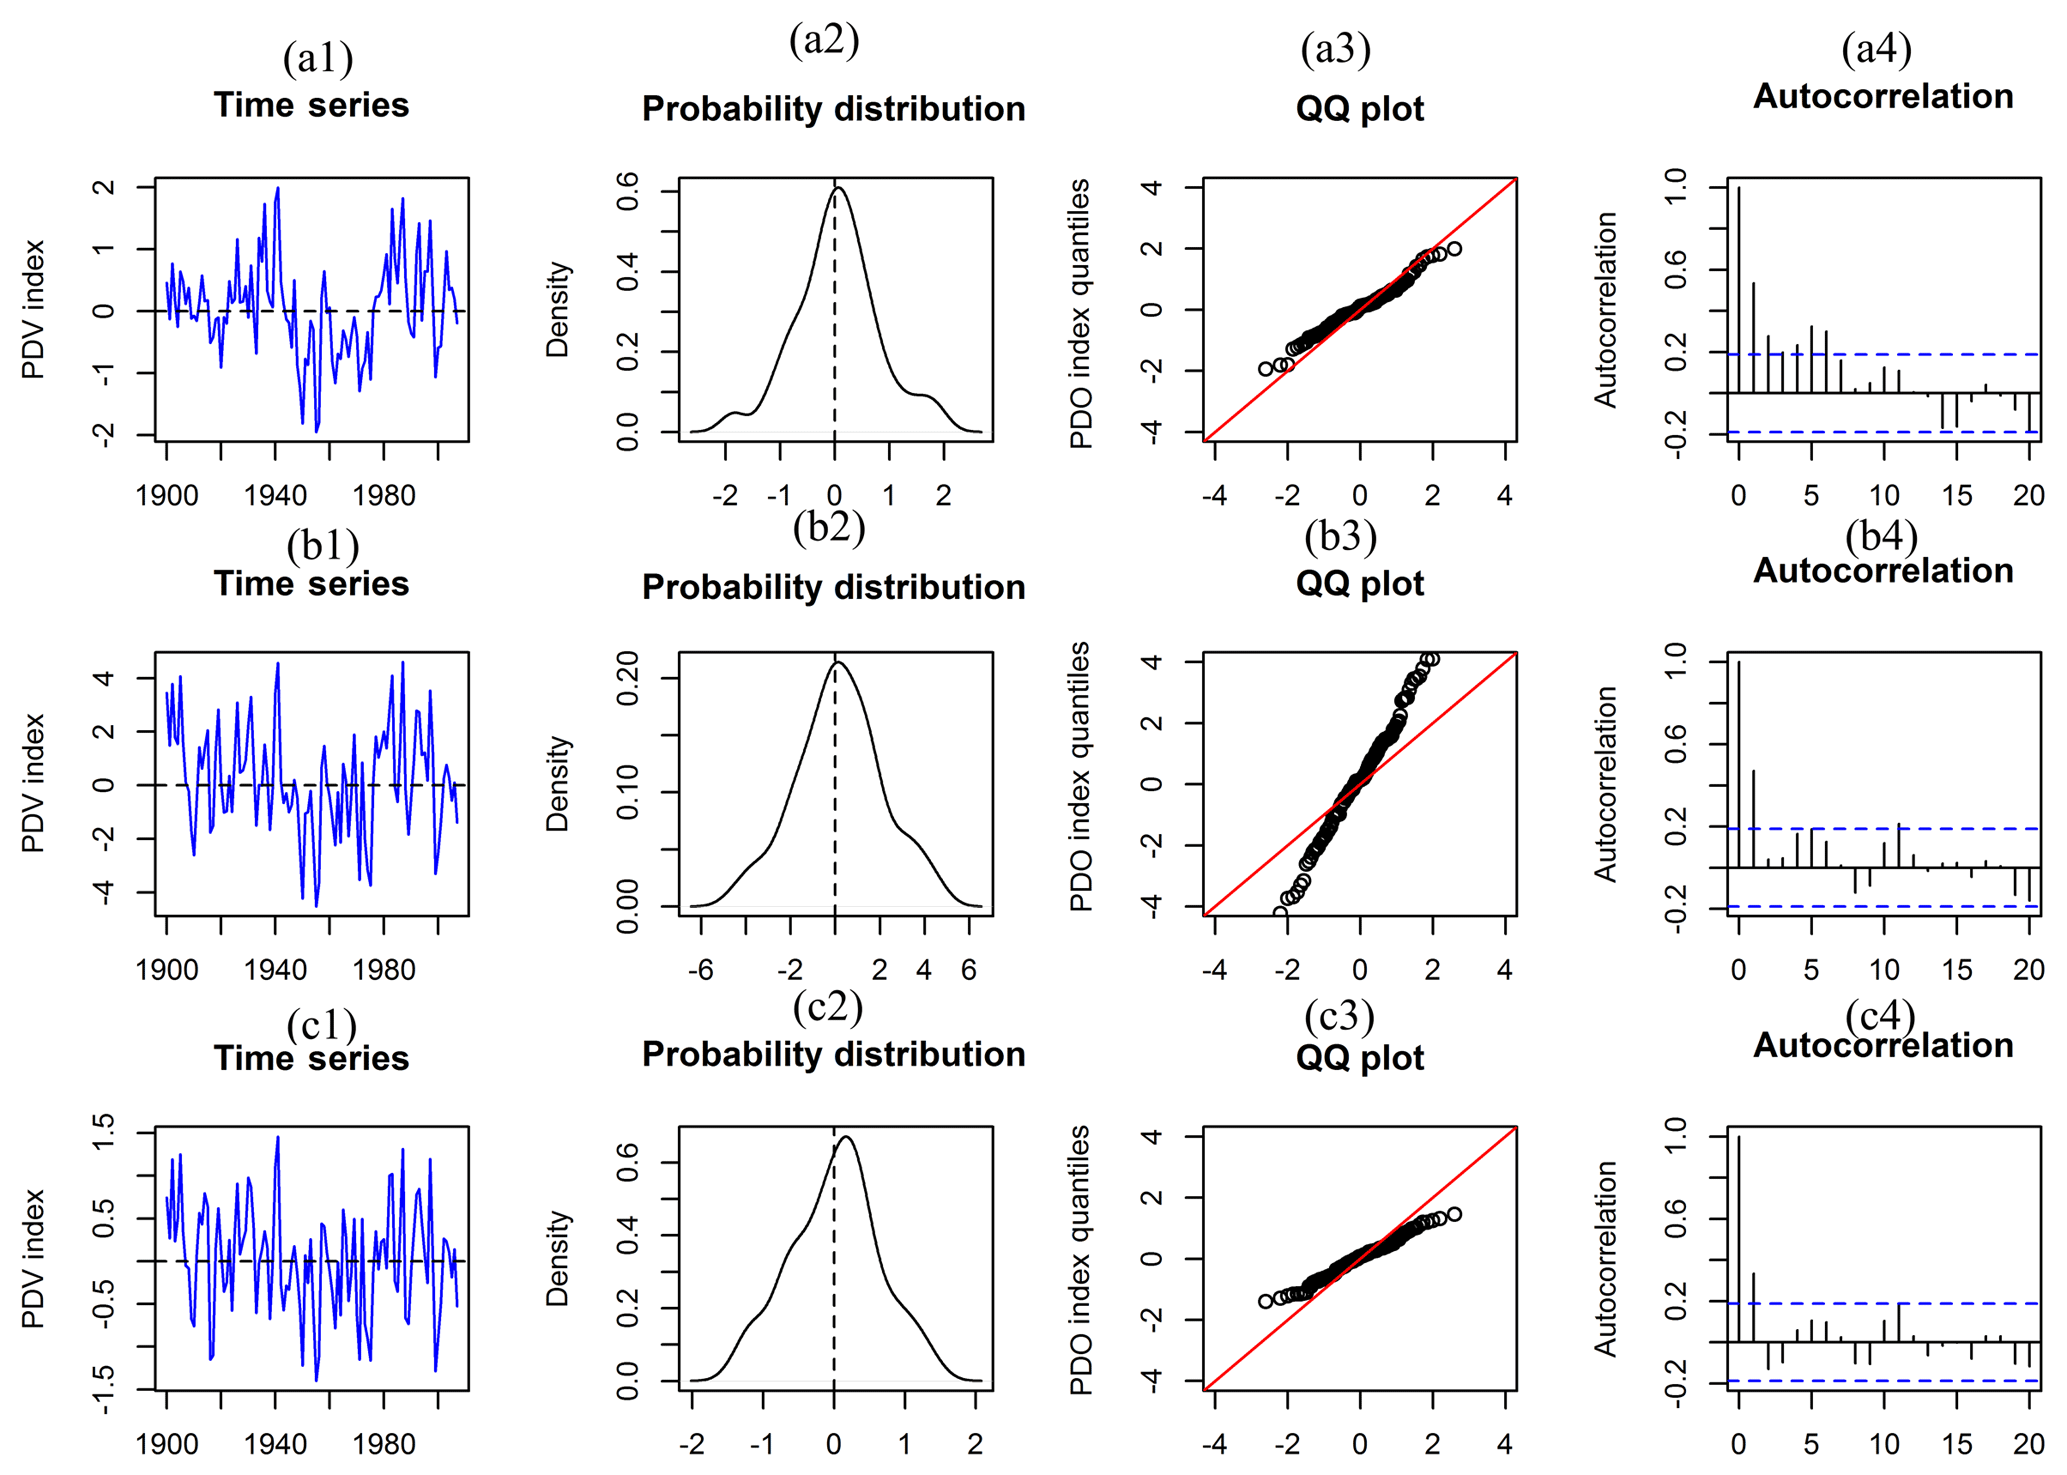 HESS - Using paleoclimate reconstructions to analyse